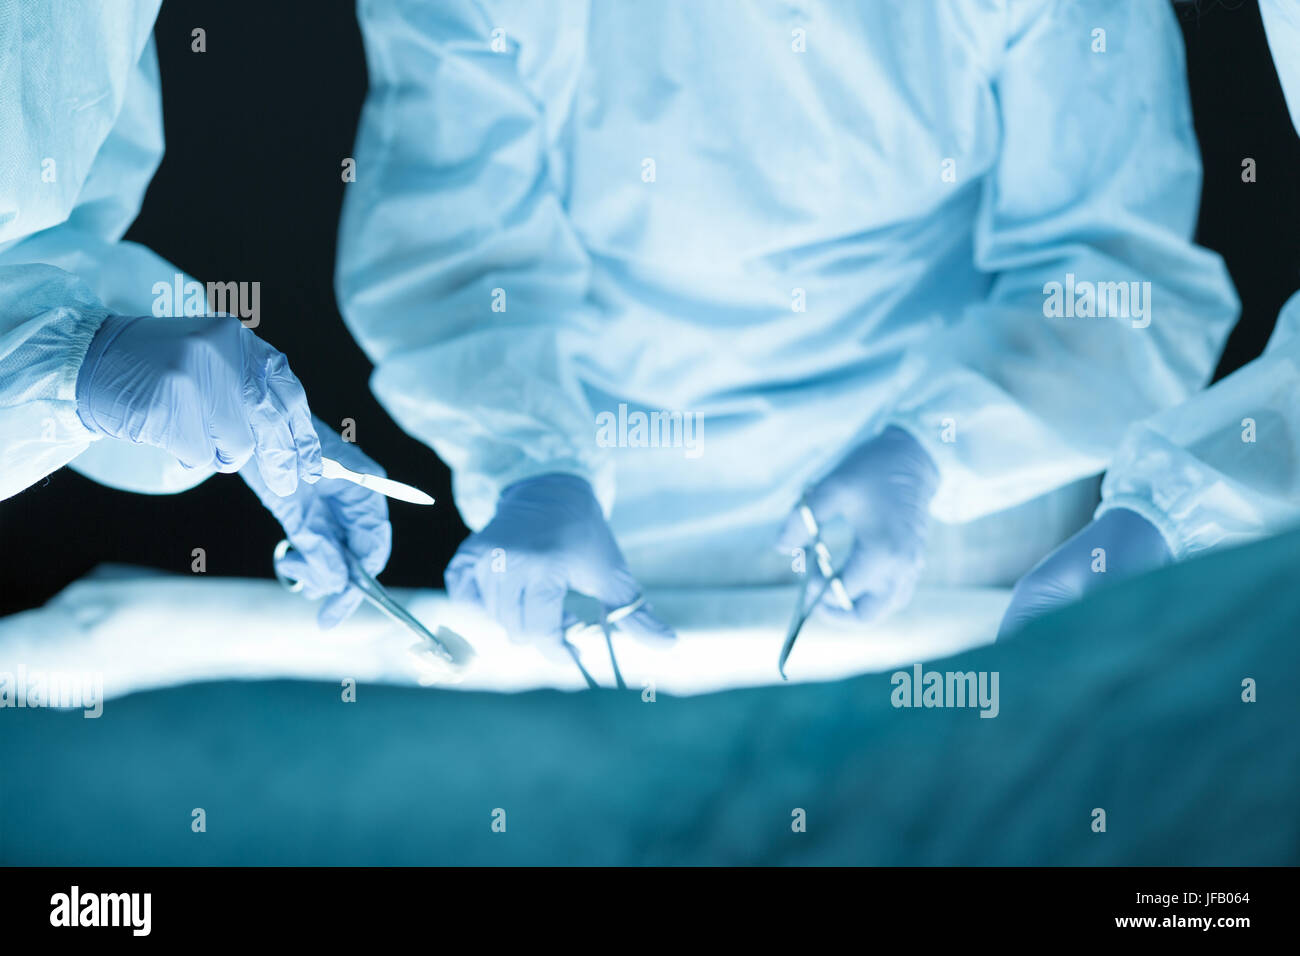 Medical team performing operation. Group of surgeon at work in operating theatre. Hands close-up view - Stock Image